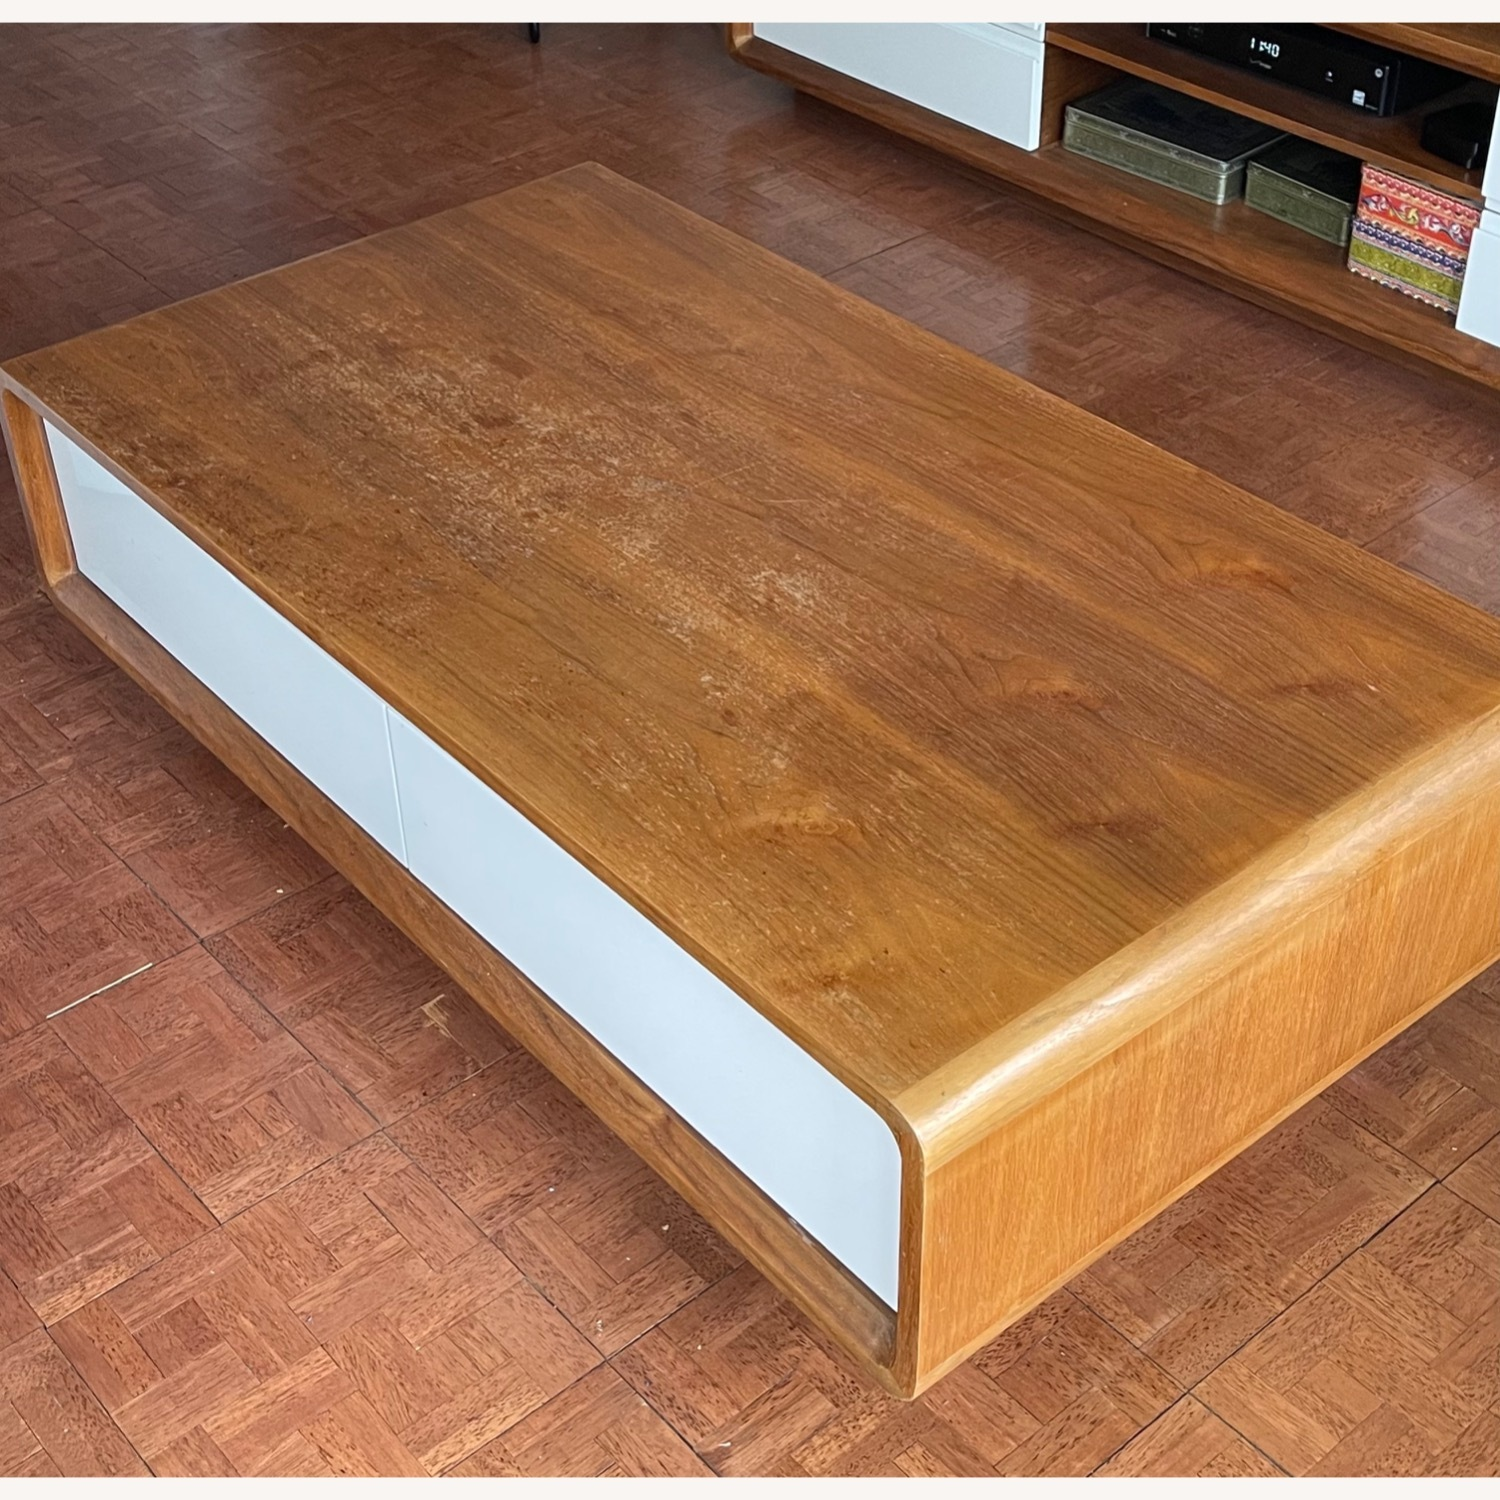 Design Art Deco Coffee Table with Four Drawers - image-1